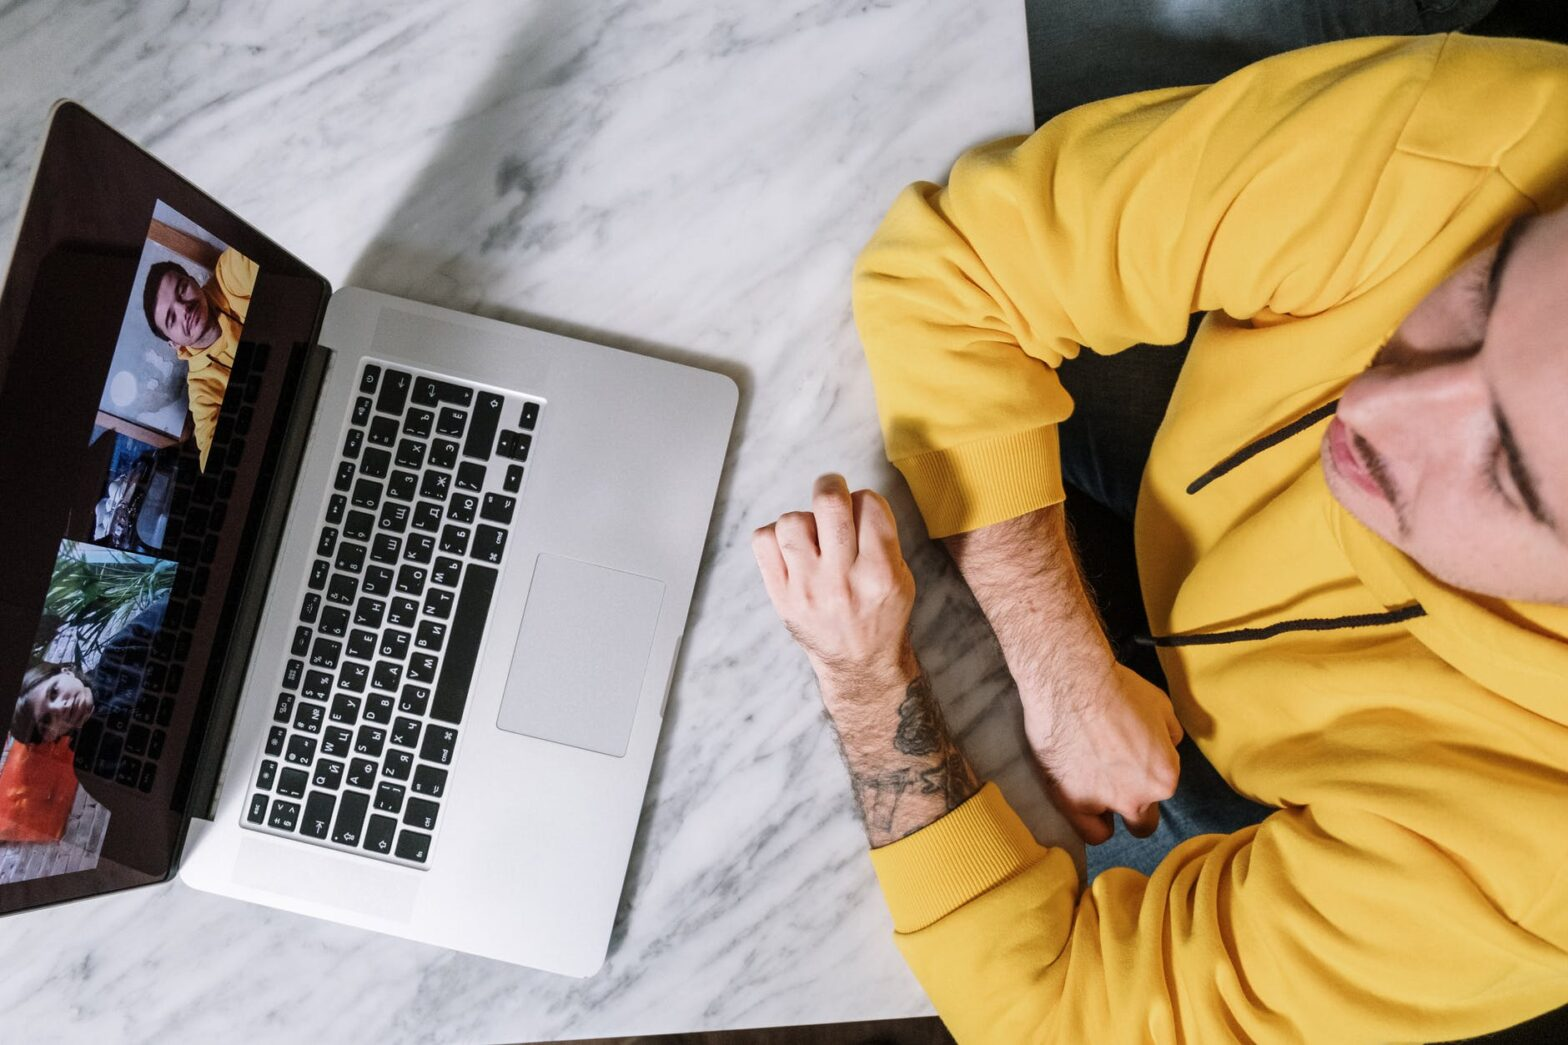 person in yellow long sleeve shirt using macbook pro